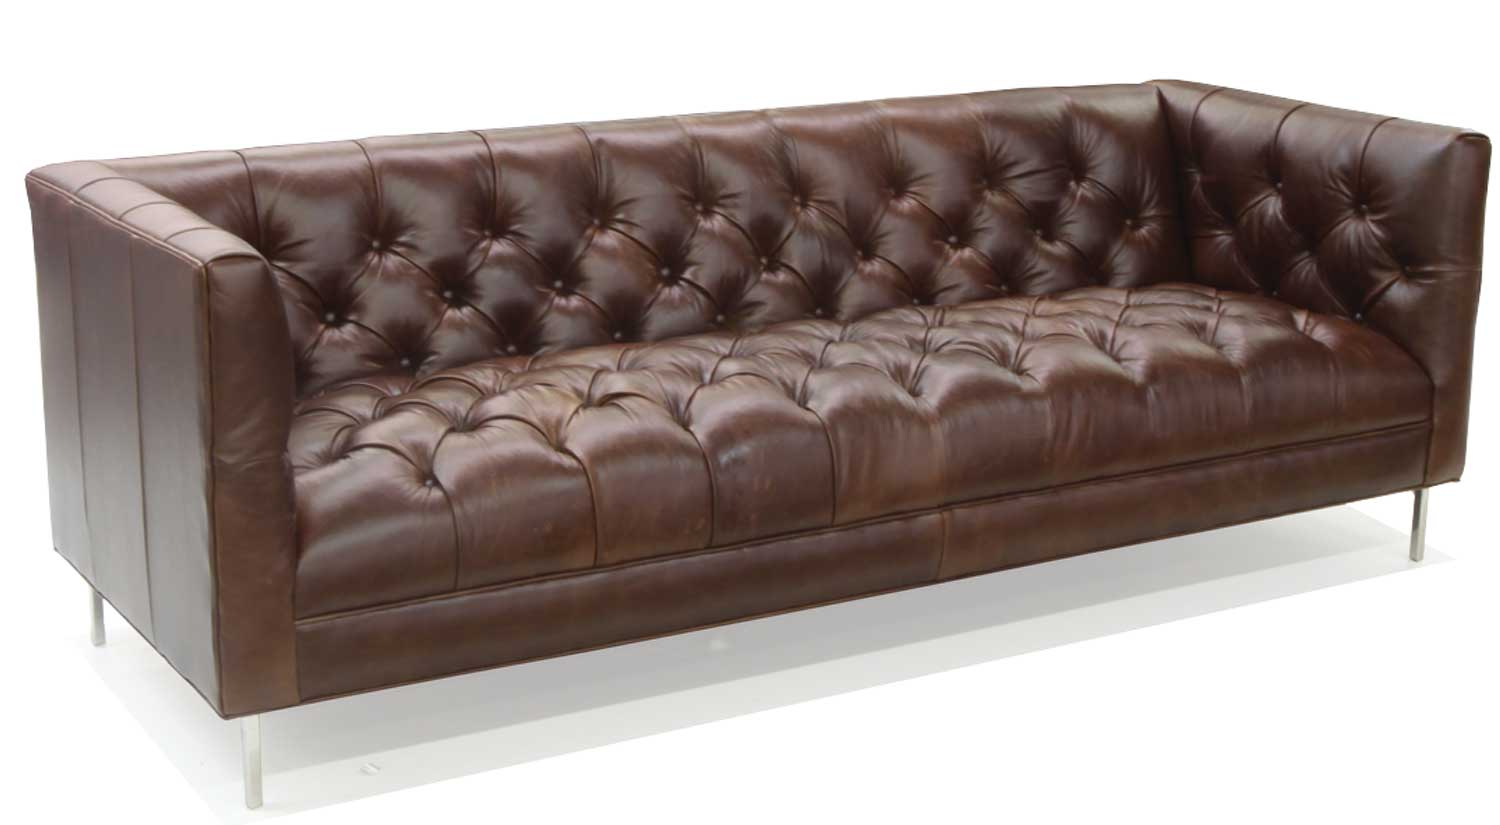 harvard chair for sale lounge chairs bedrooms circle furniture sofa tufted sofas modern styles living loveseats